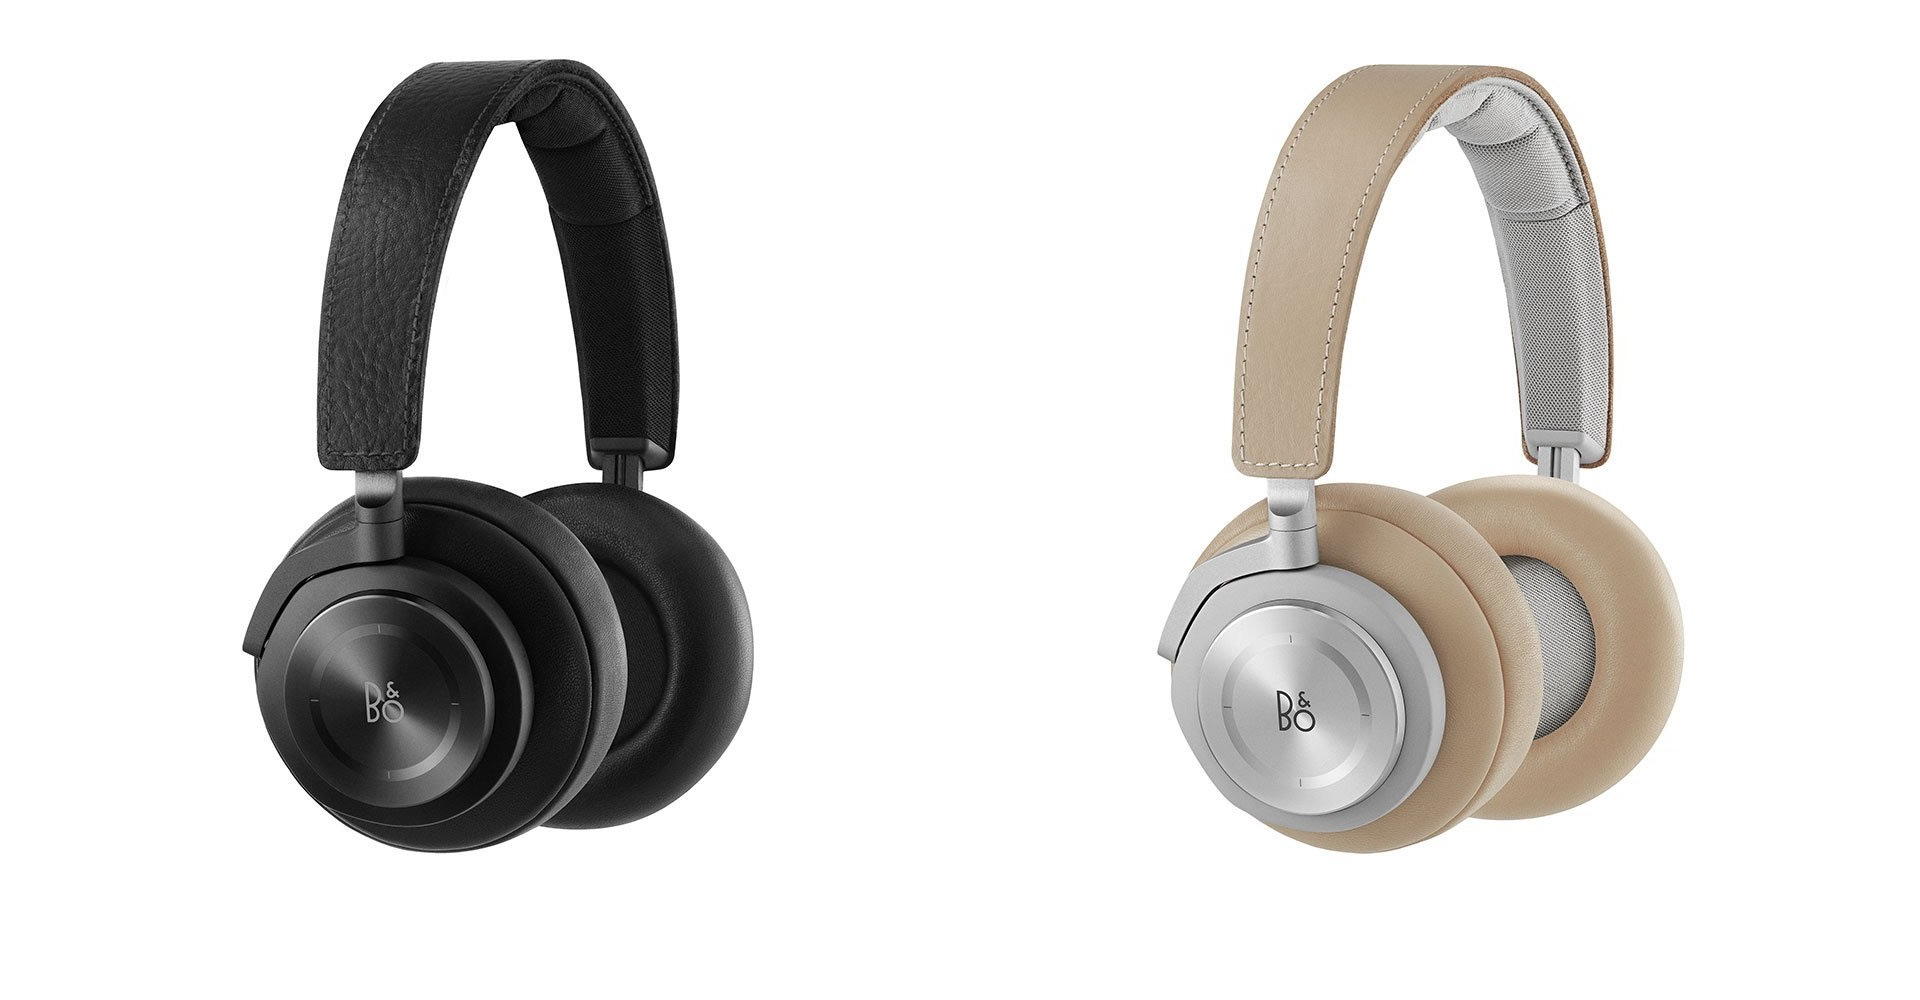 Bang & Olufsen's BeoPlay H7 wireless headphones. ($449)